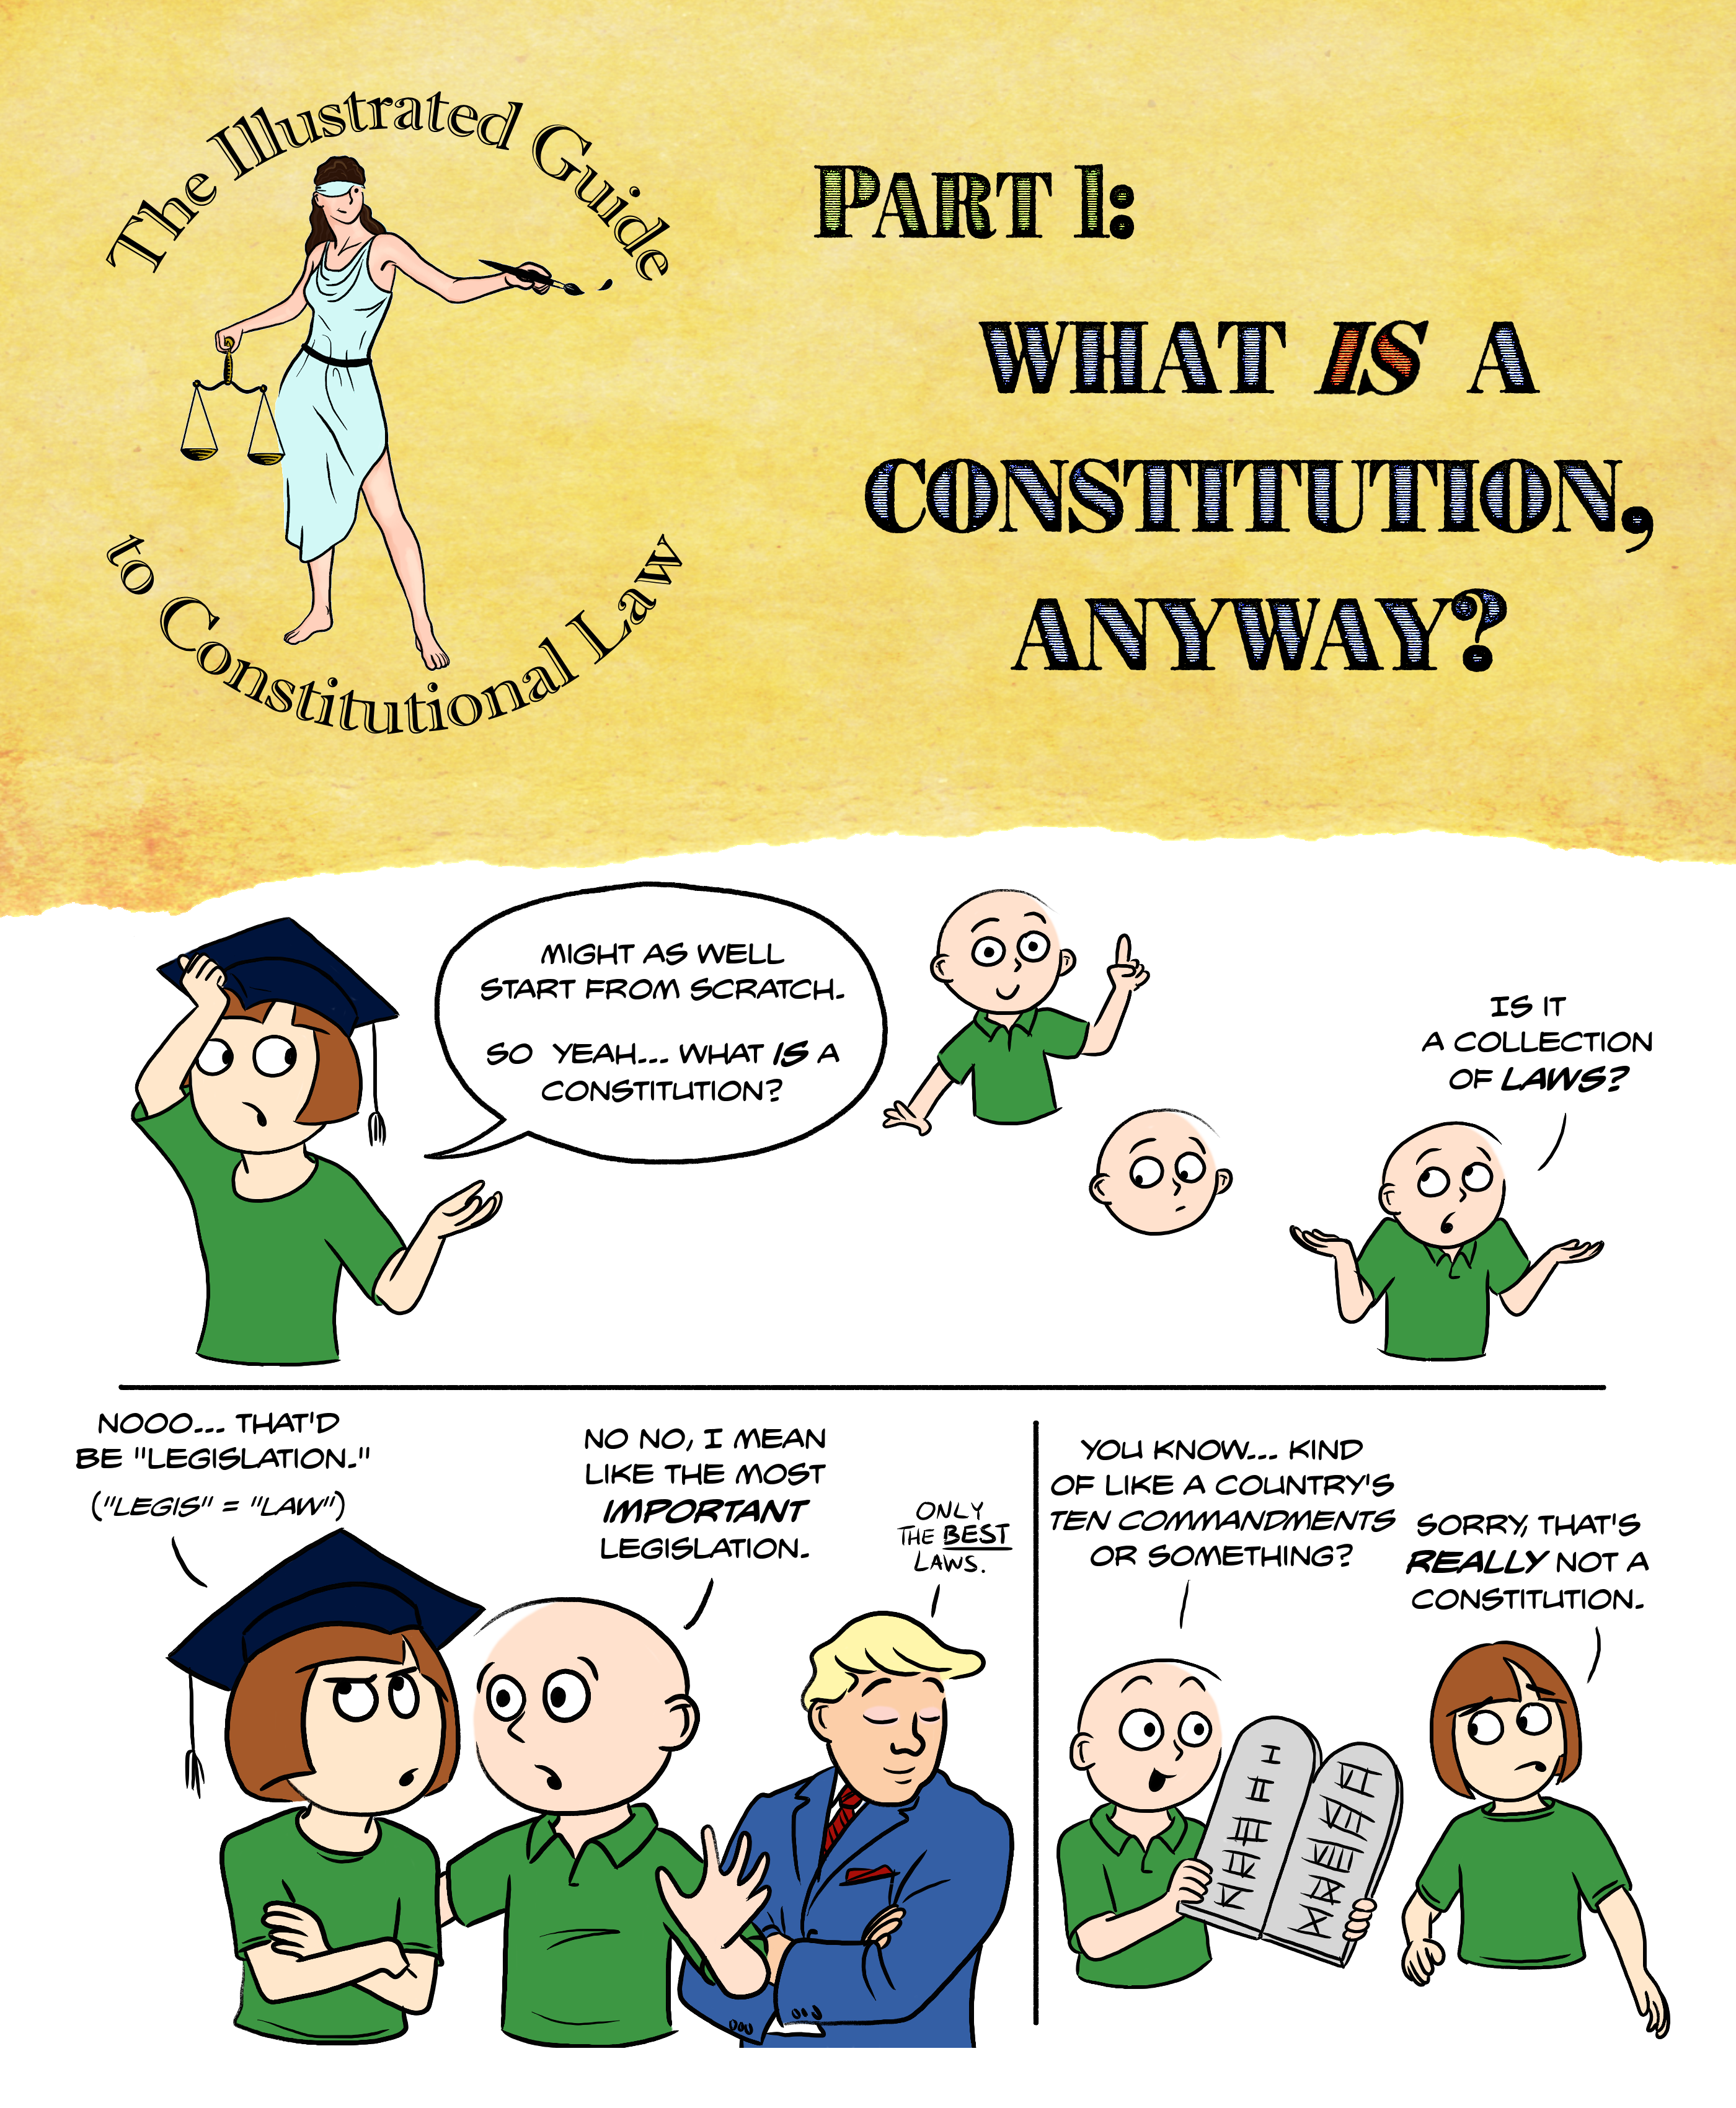 What is a constitution? A constitution is not a collection of laws. Not even the really important laws.